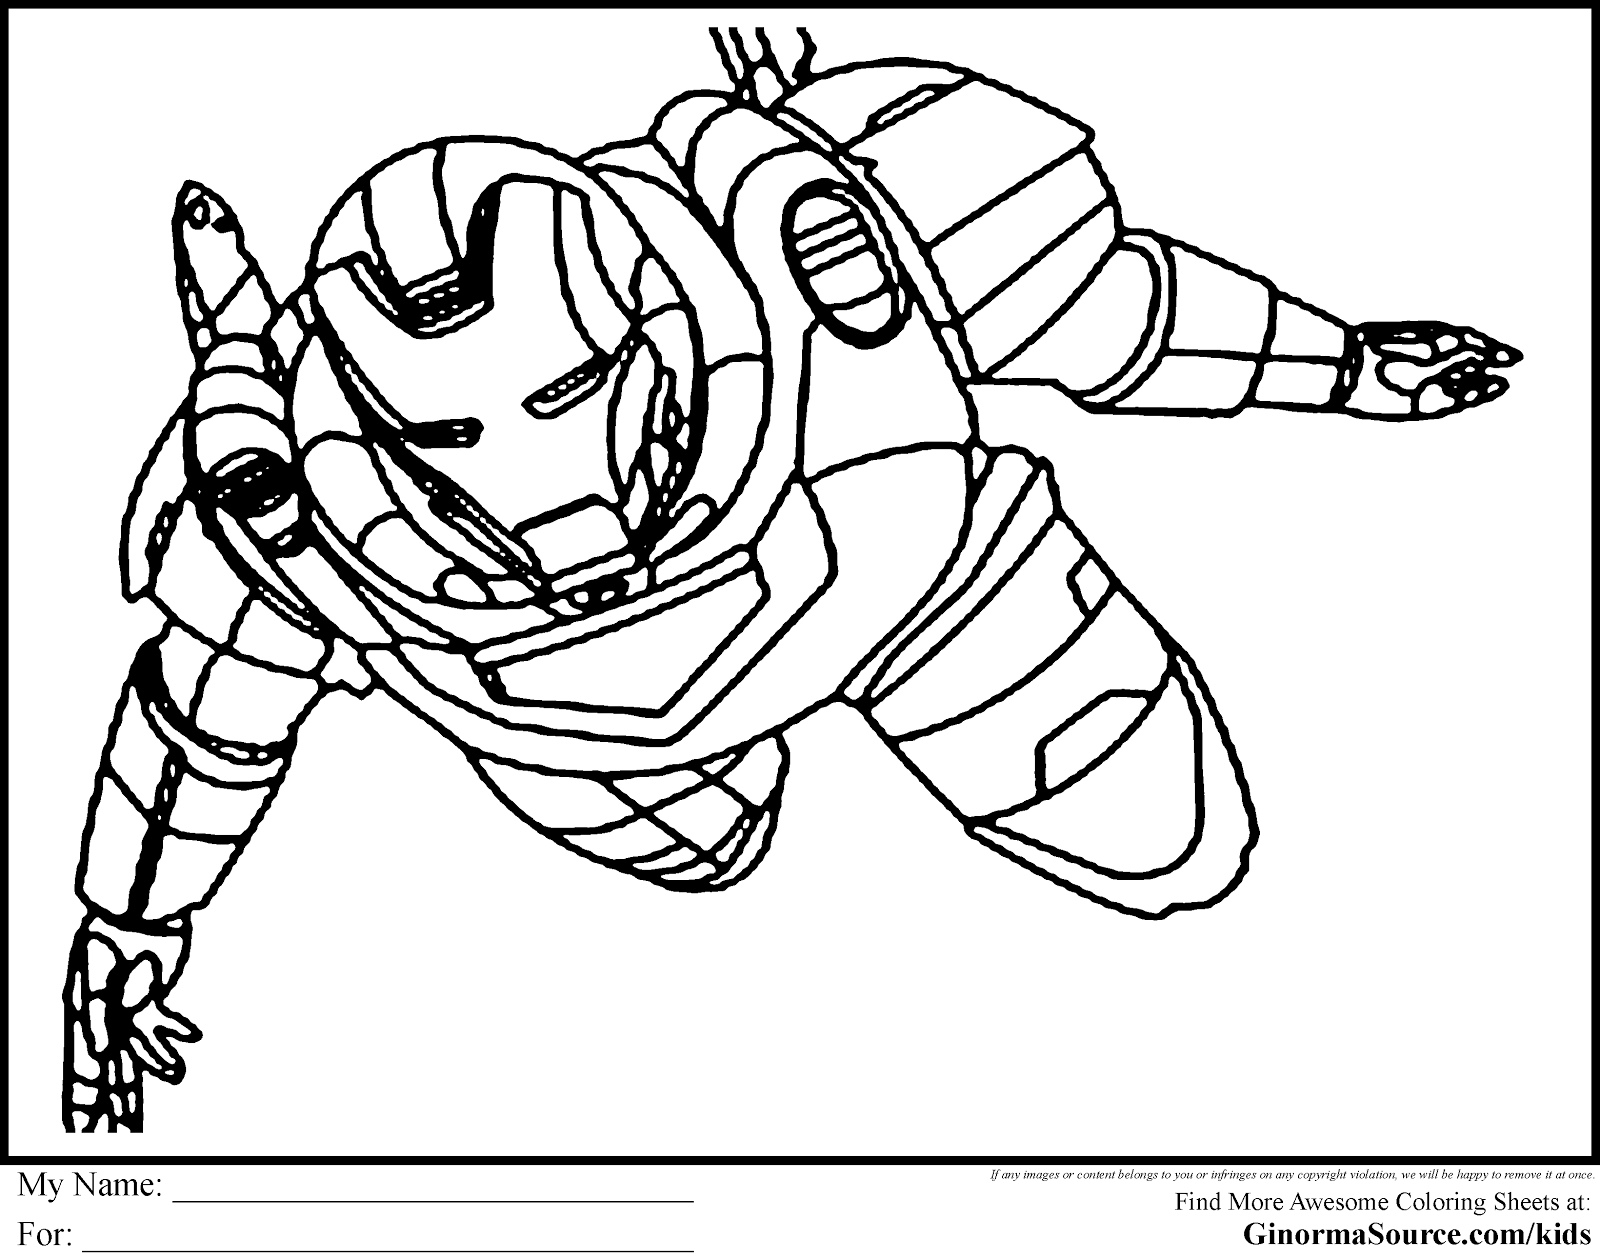 Avengers Captain America Coloring Page Qohacolorhd